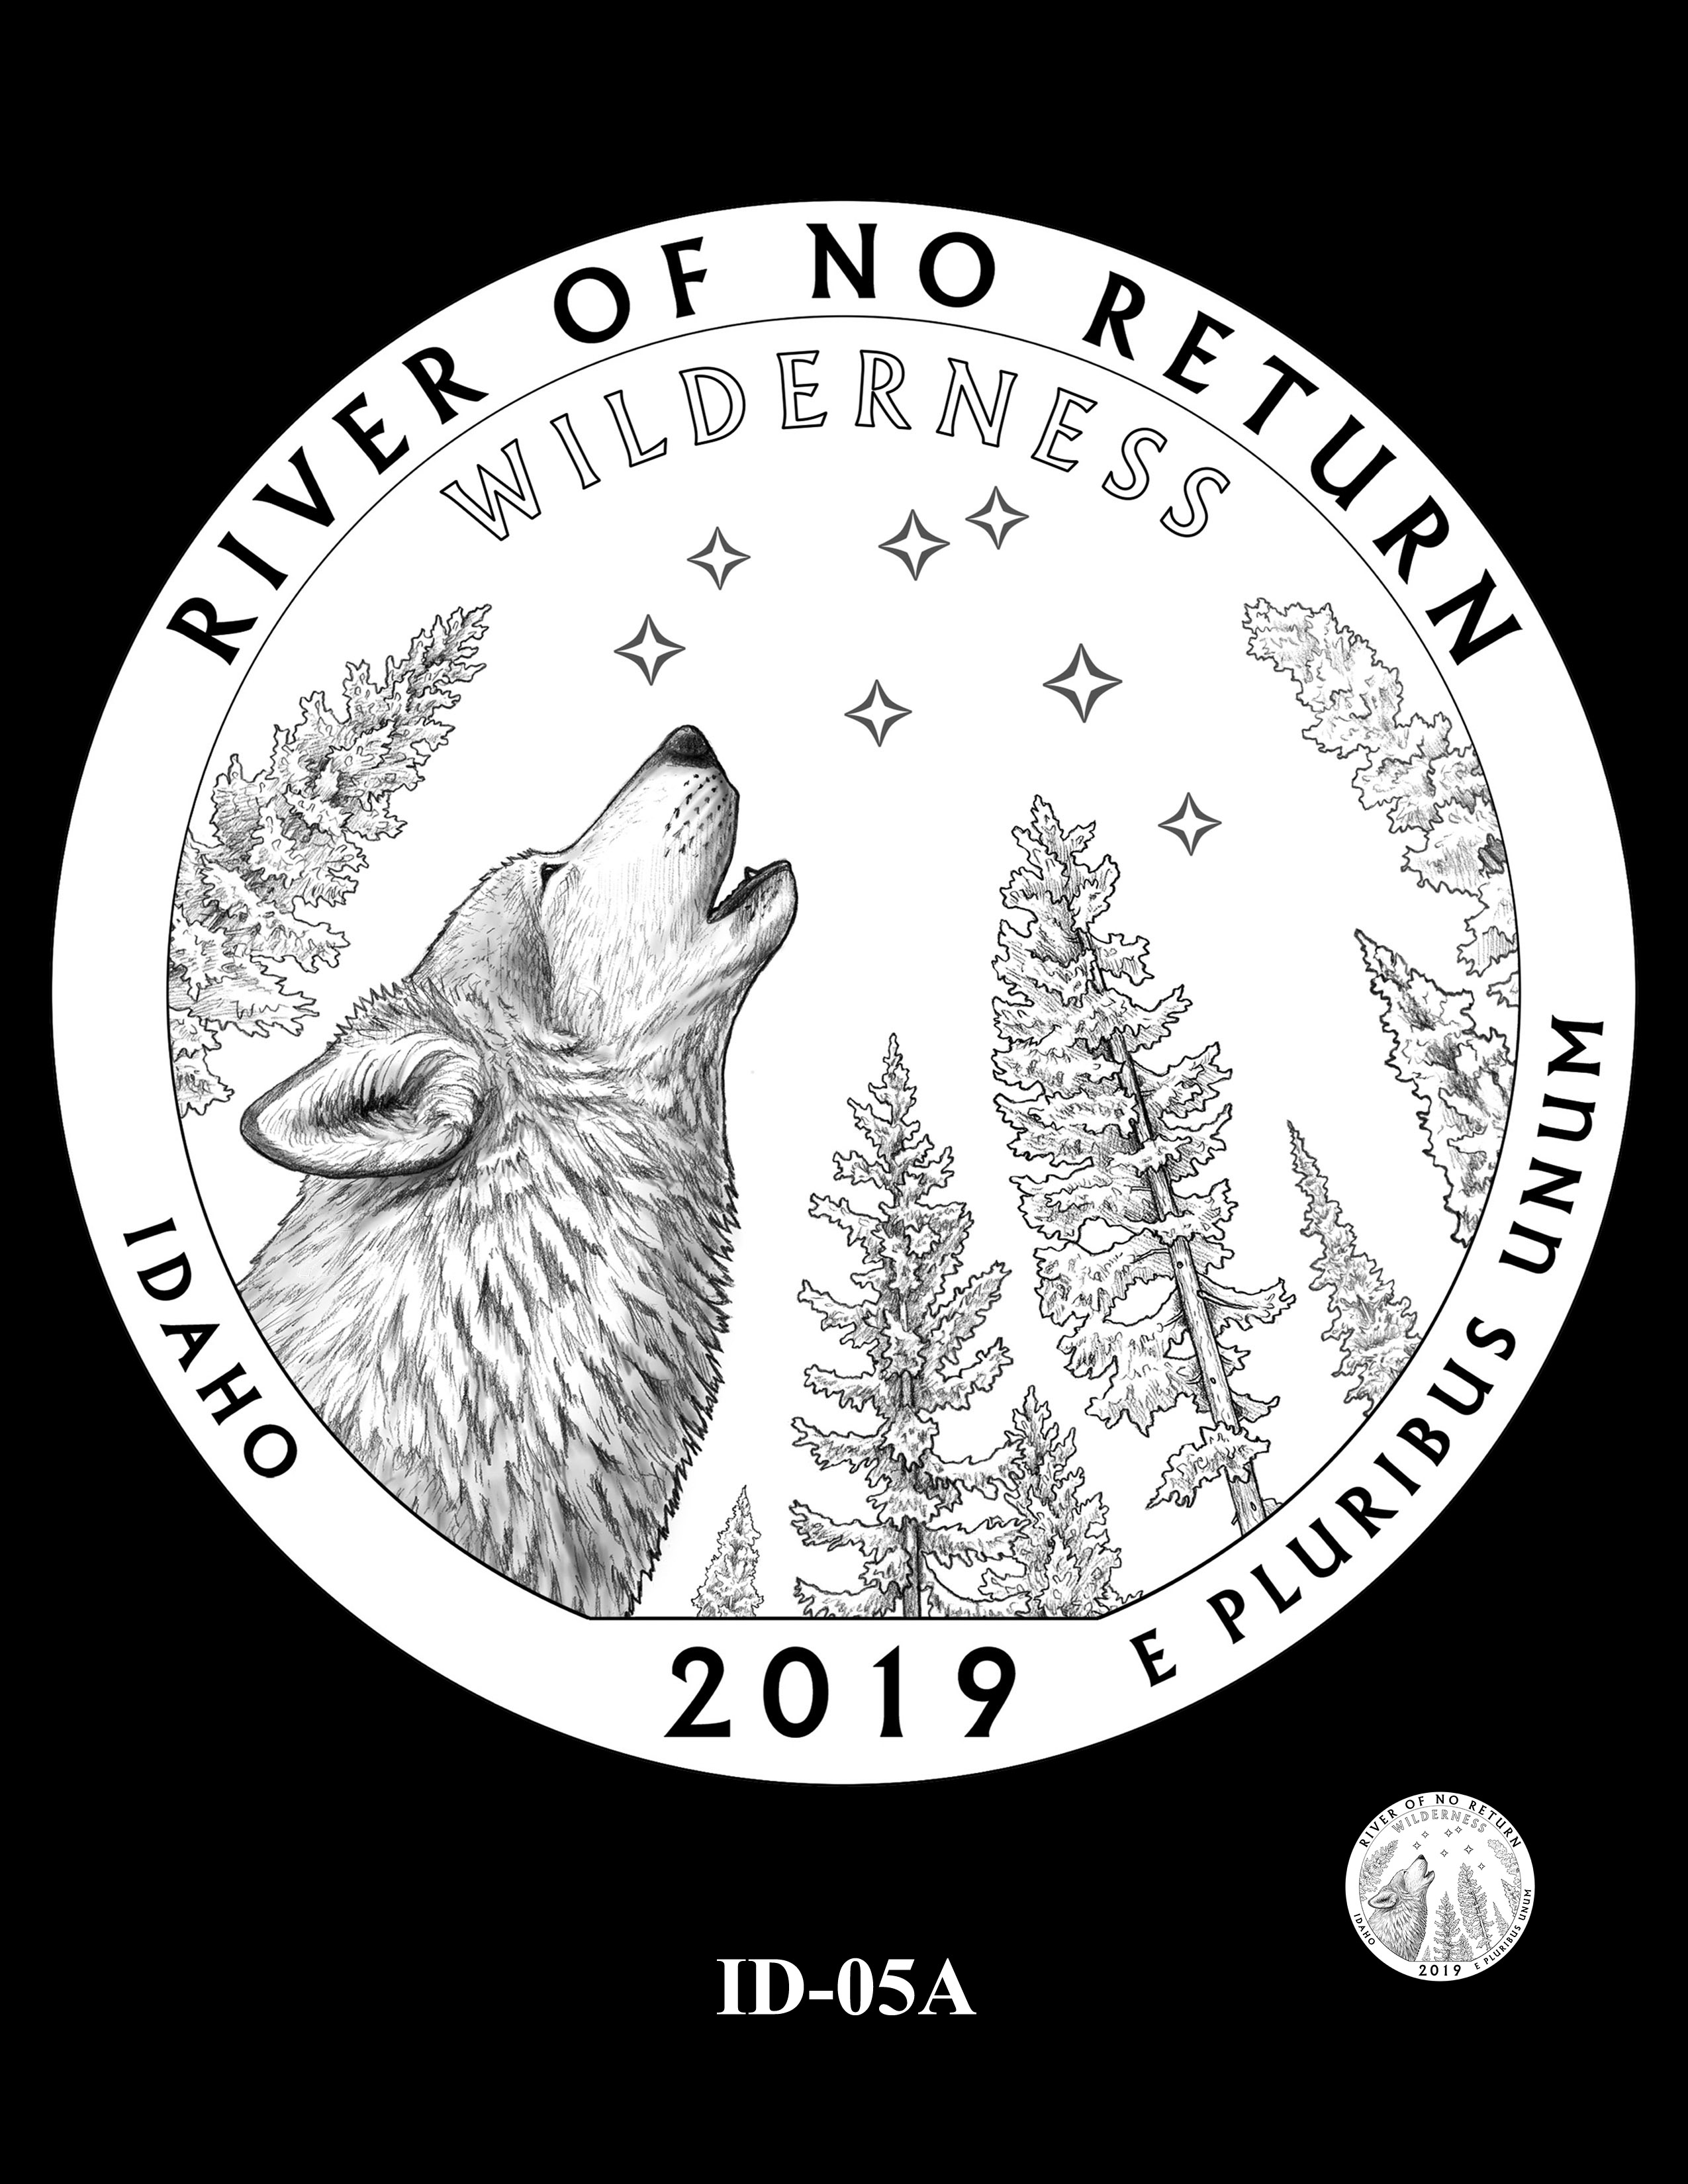 ID-05A -- 2019 America the Beautiful Quarters® Program